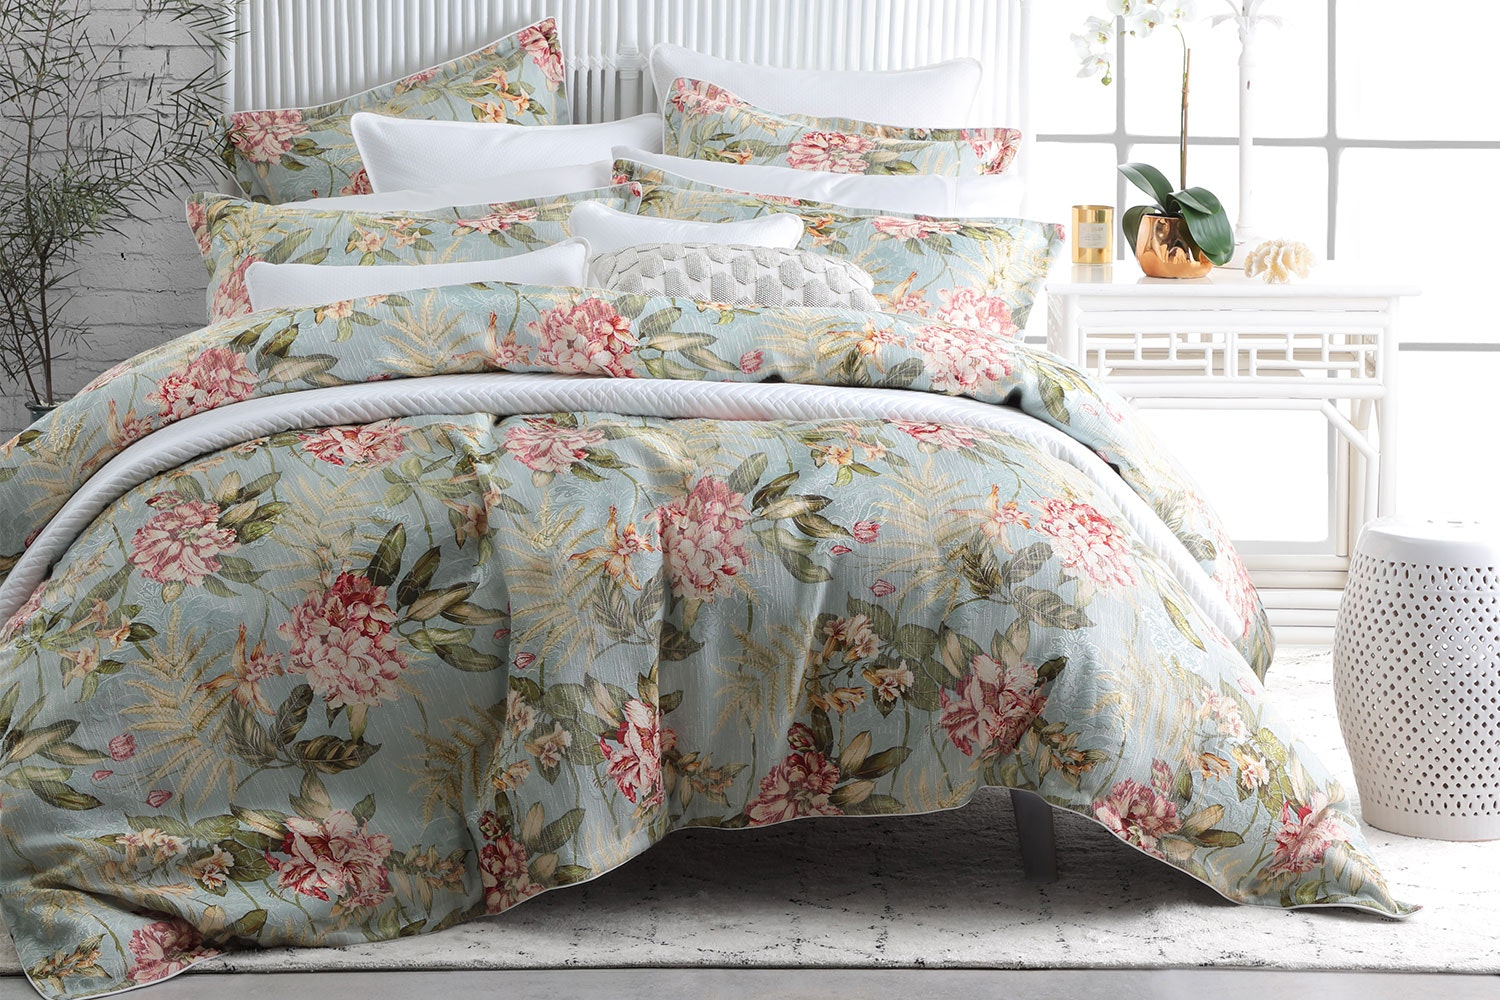 Leura Mist Duvet Cover Set by Private Collection